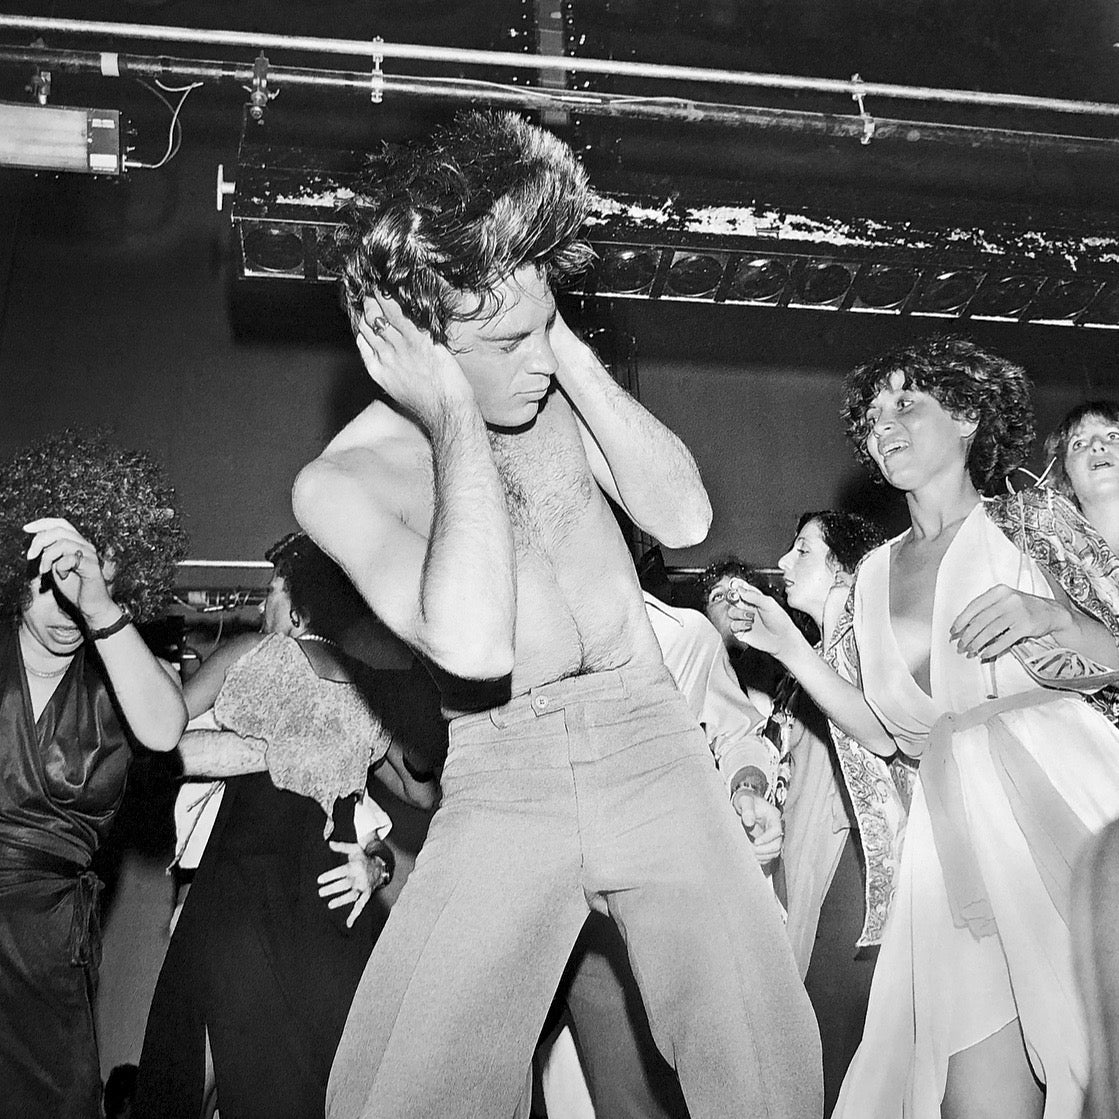 <b>A Tale of Two Cities: Disco Era Bushwick </b><br>Meryl Meisler